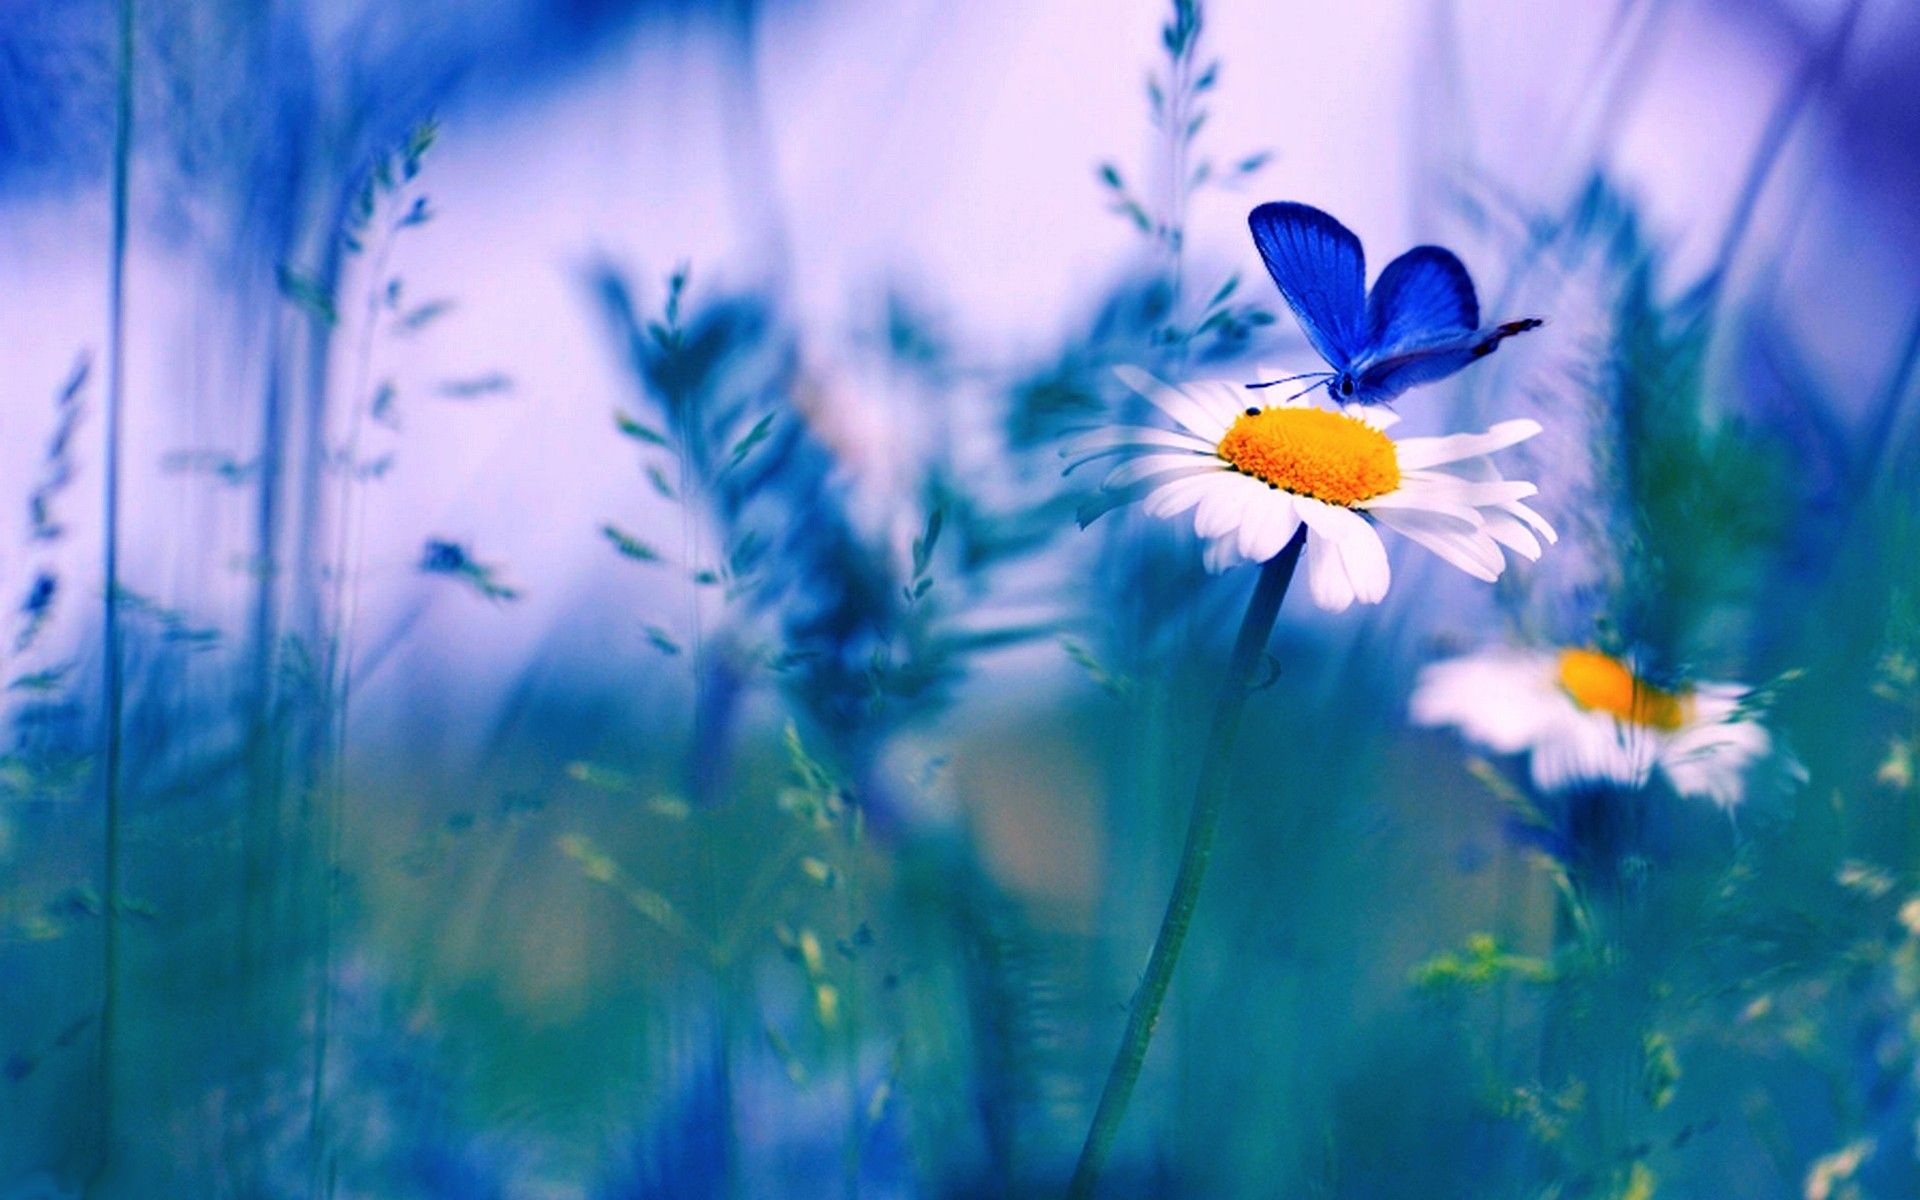 flowers with butterfly wallpaper hd